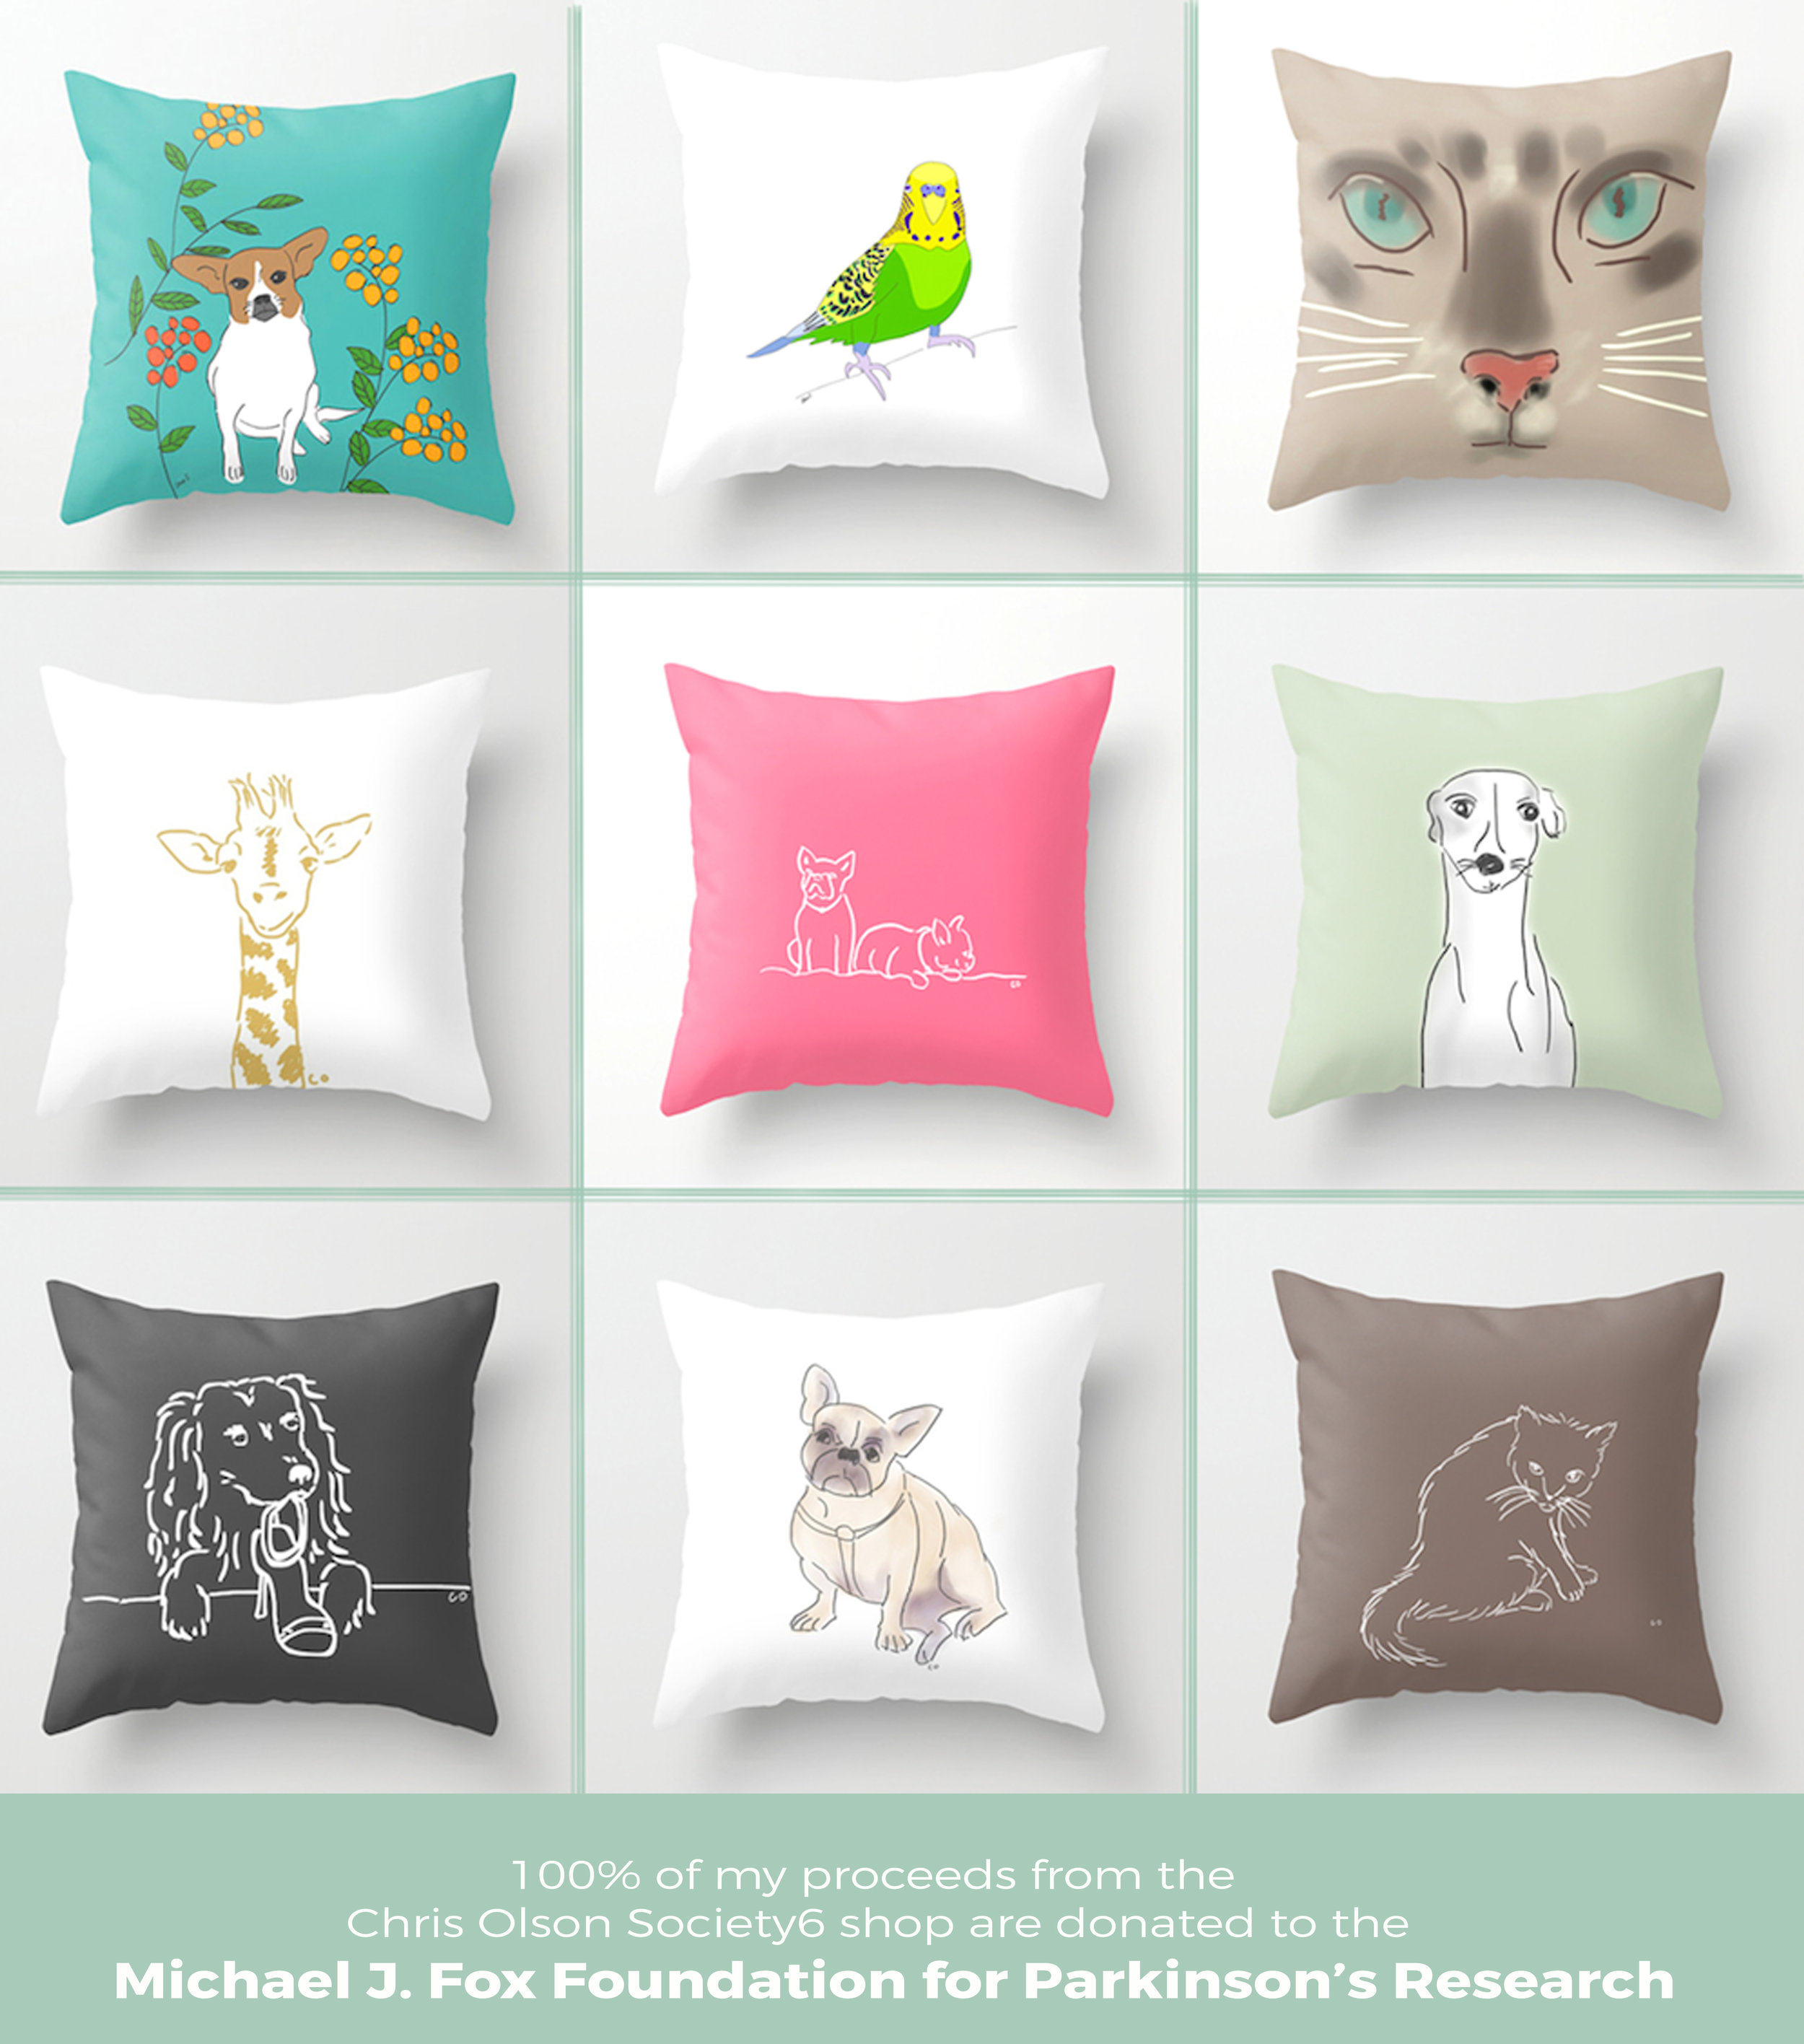 gifts that give back pillows